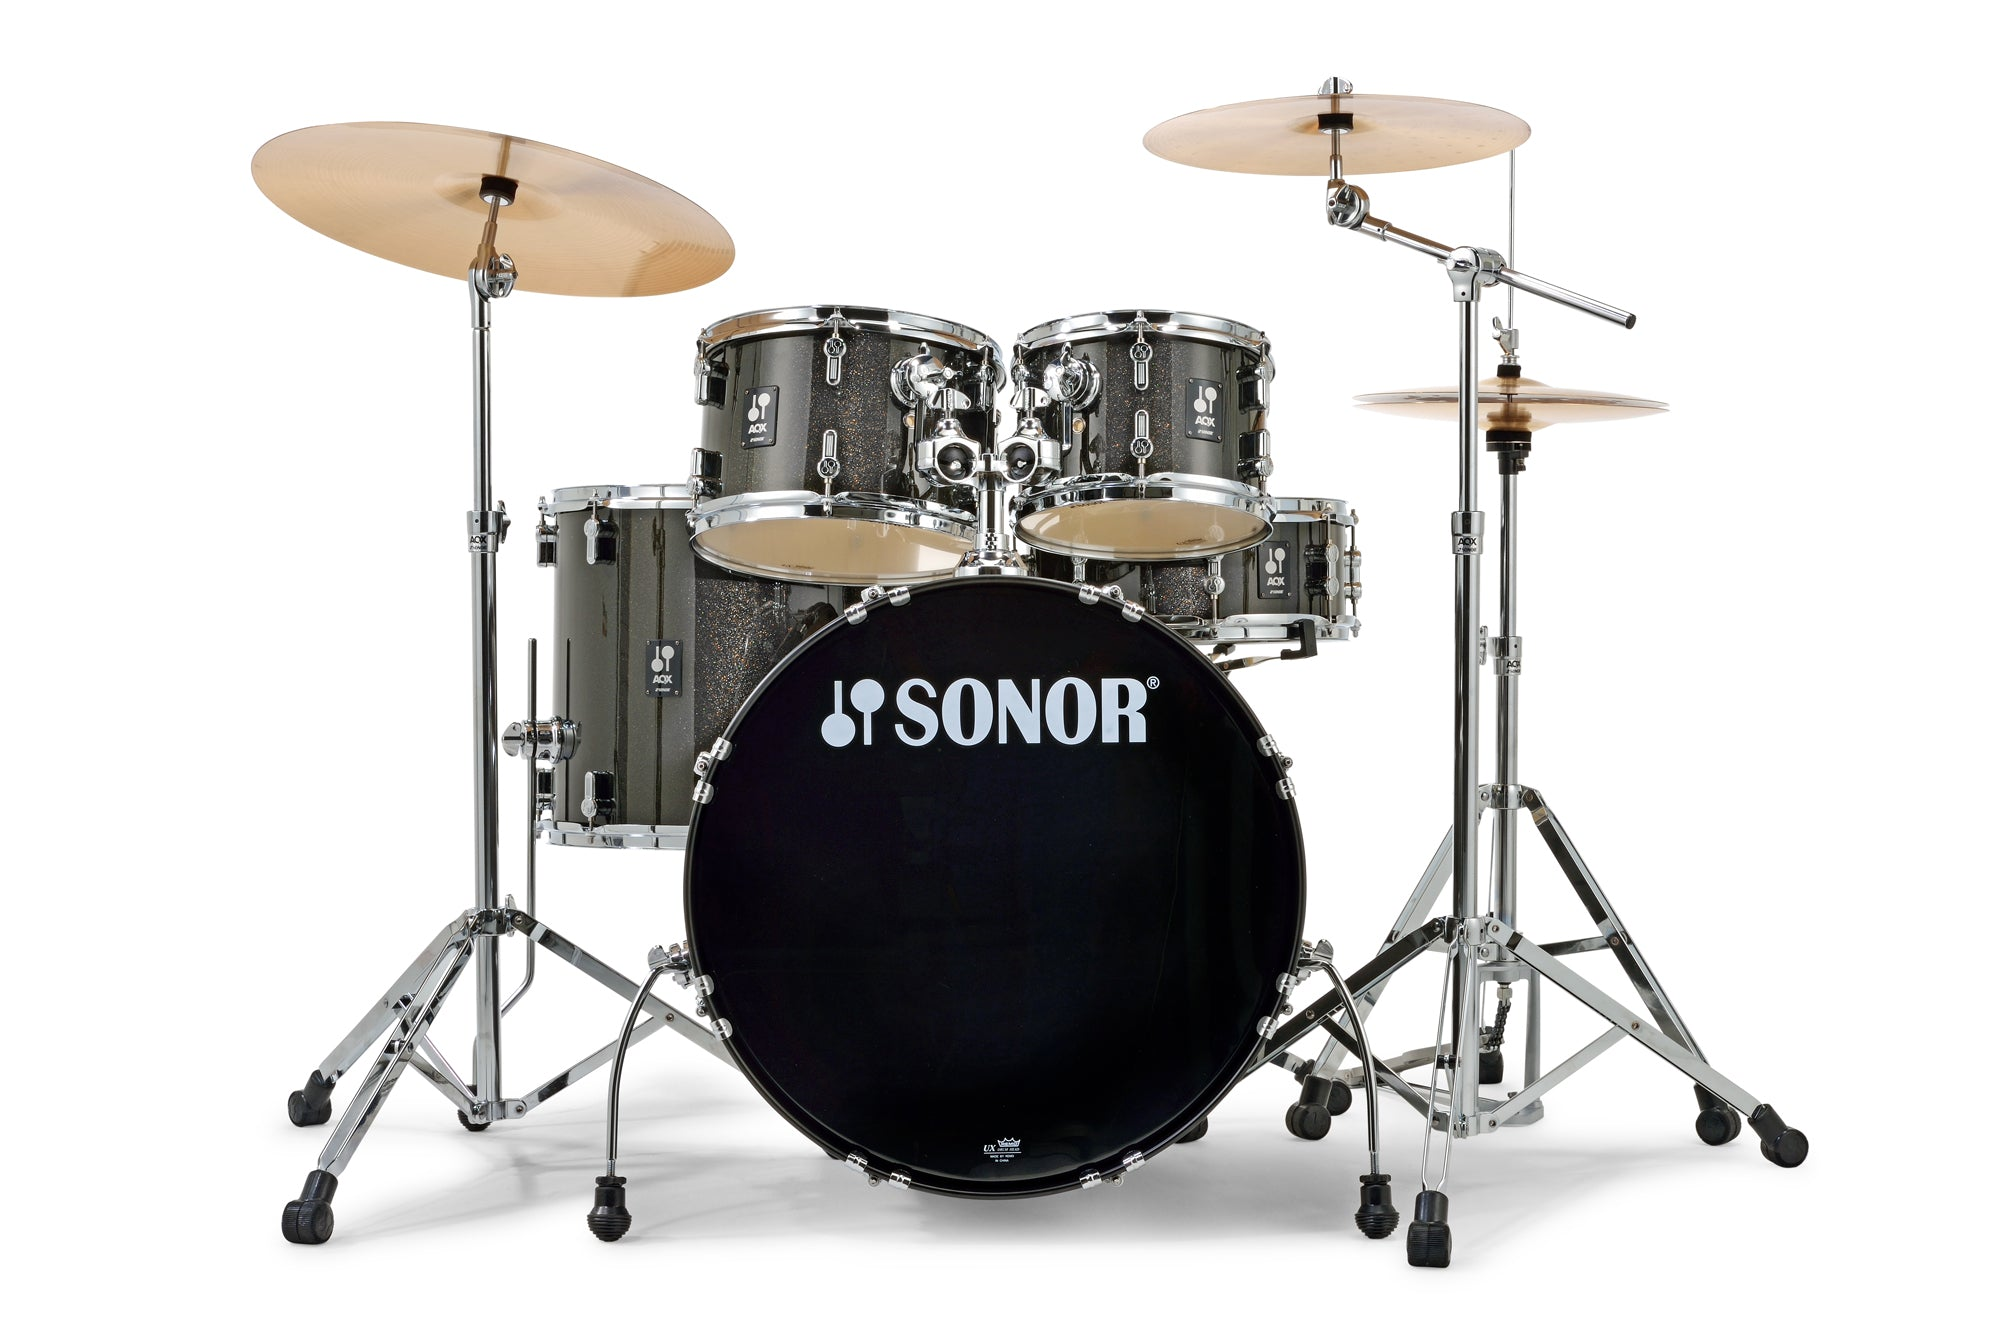 SONOR ソナー AQX STAGE